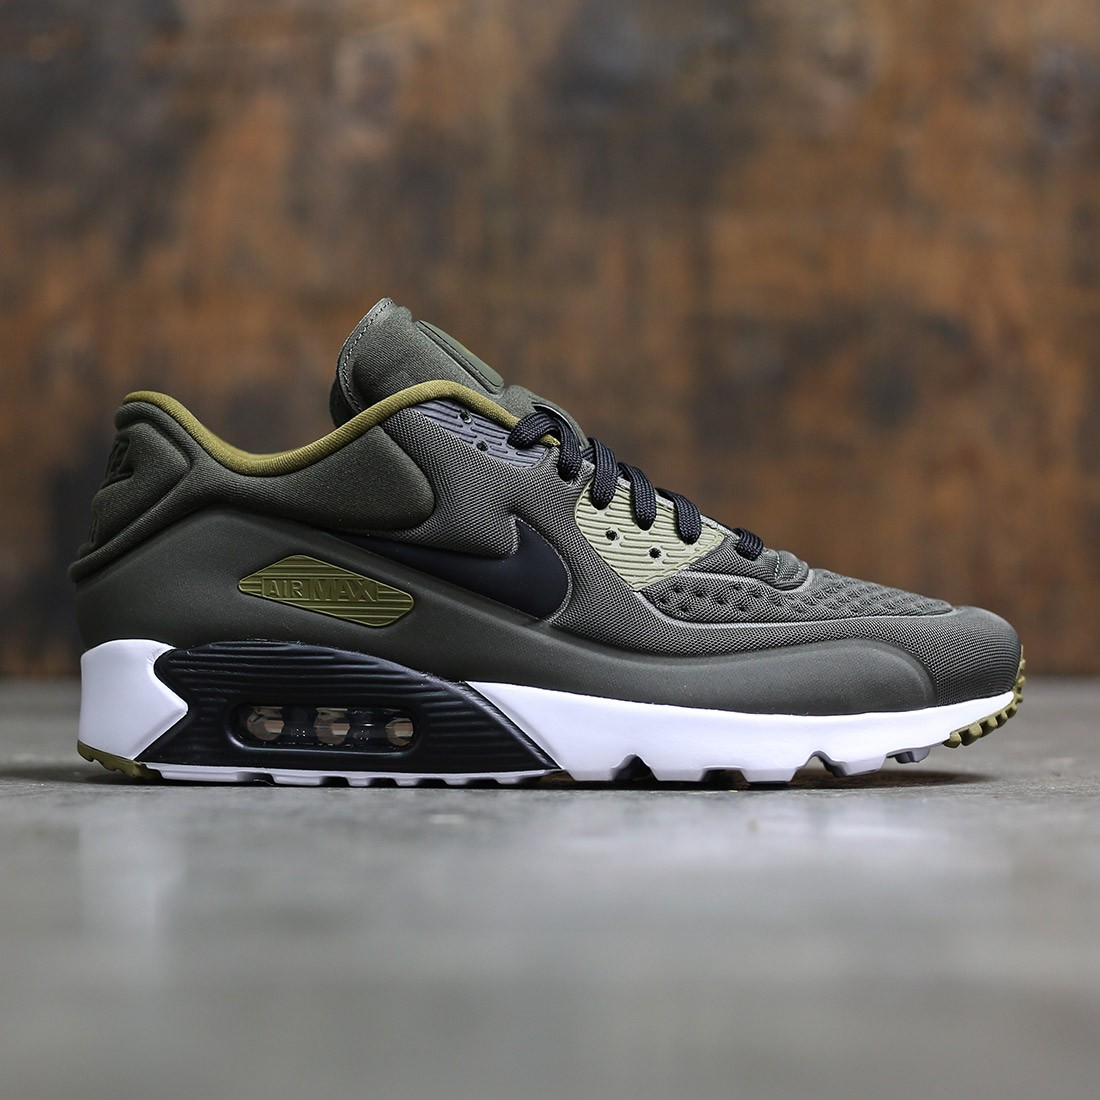 Nike Ultra Khaki Olive Air Men Secargo Max Black Flak White 90 dxhBtsrQCo